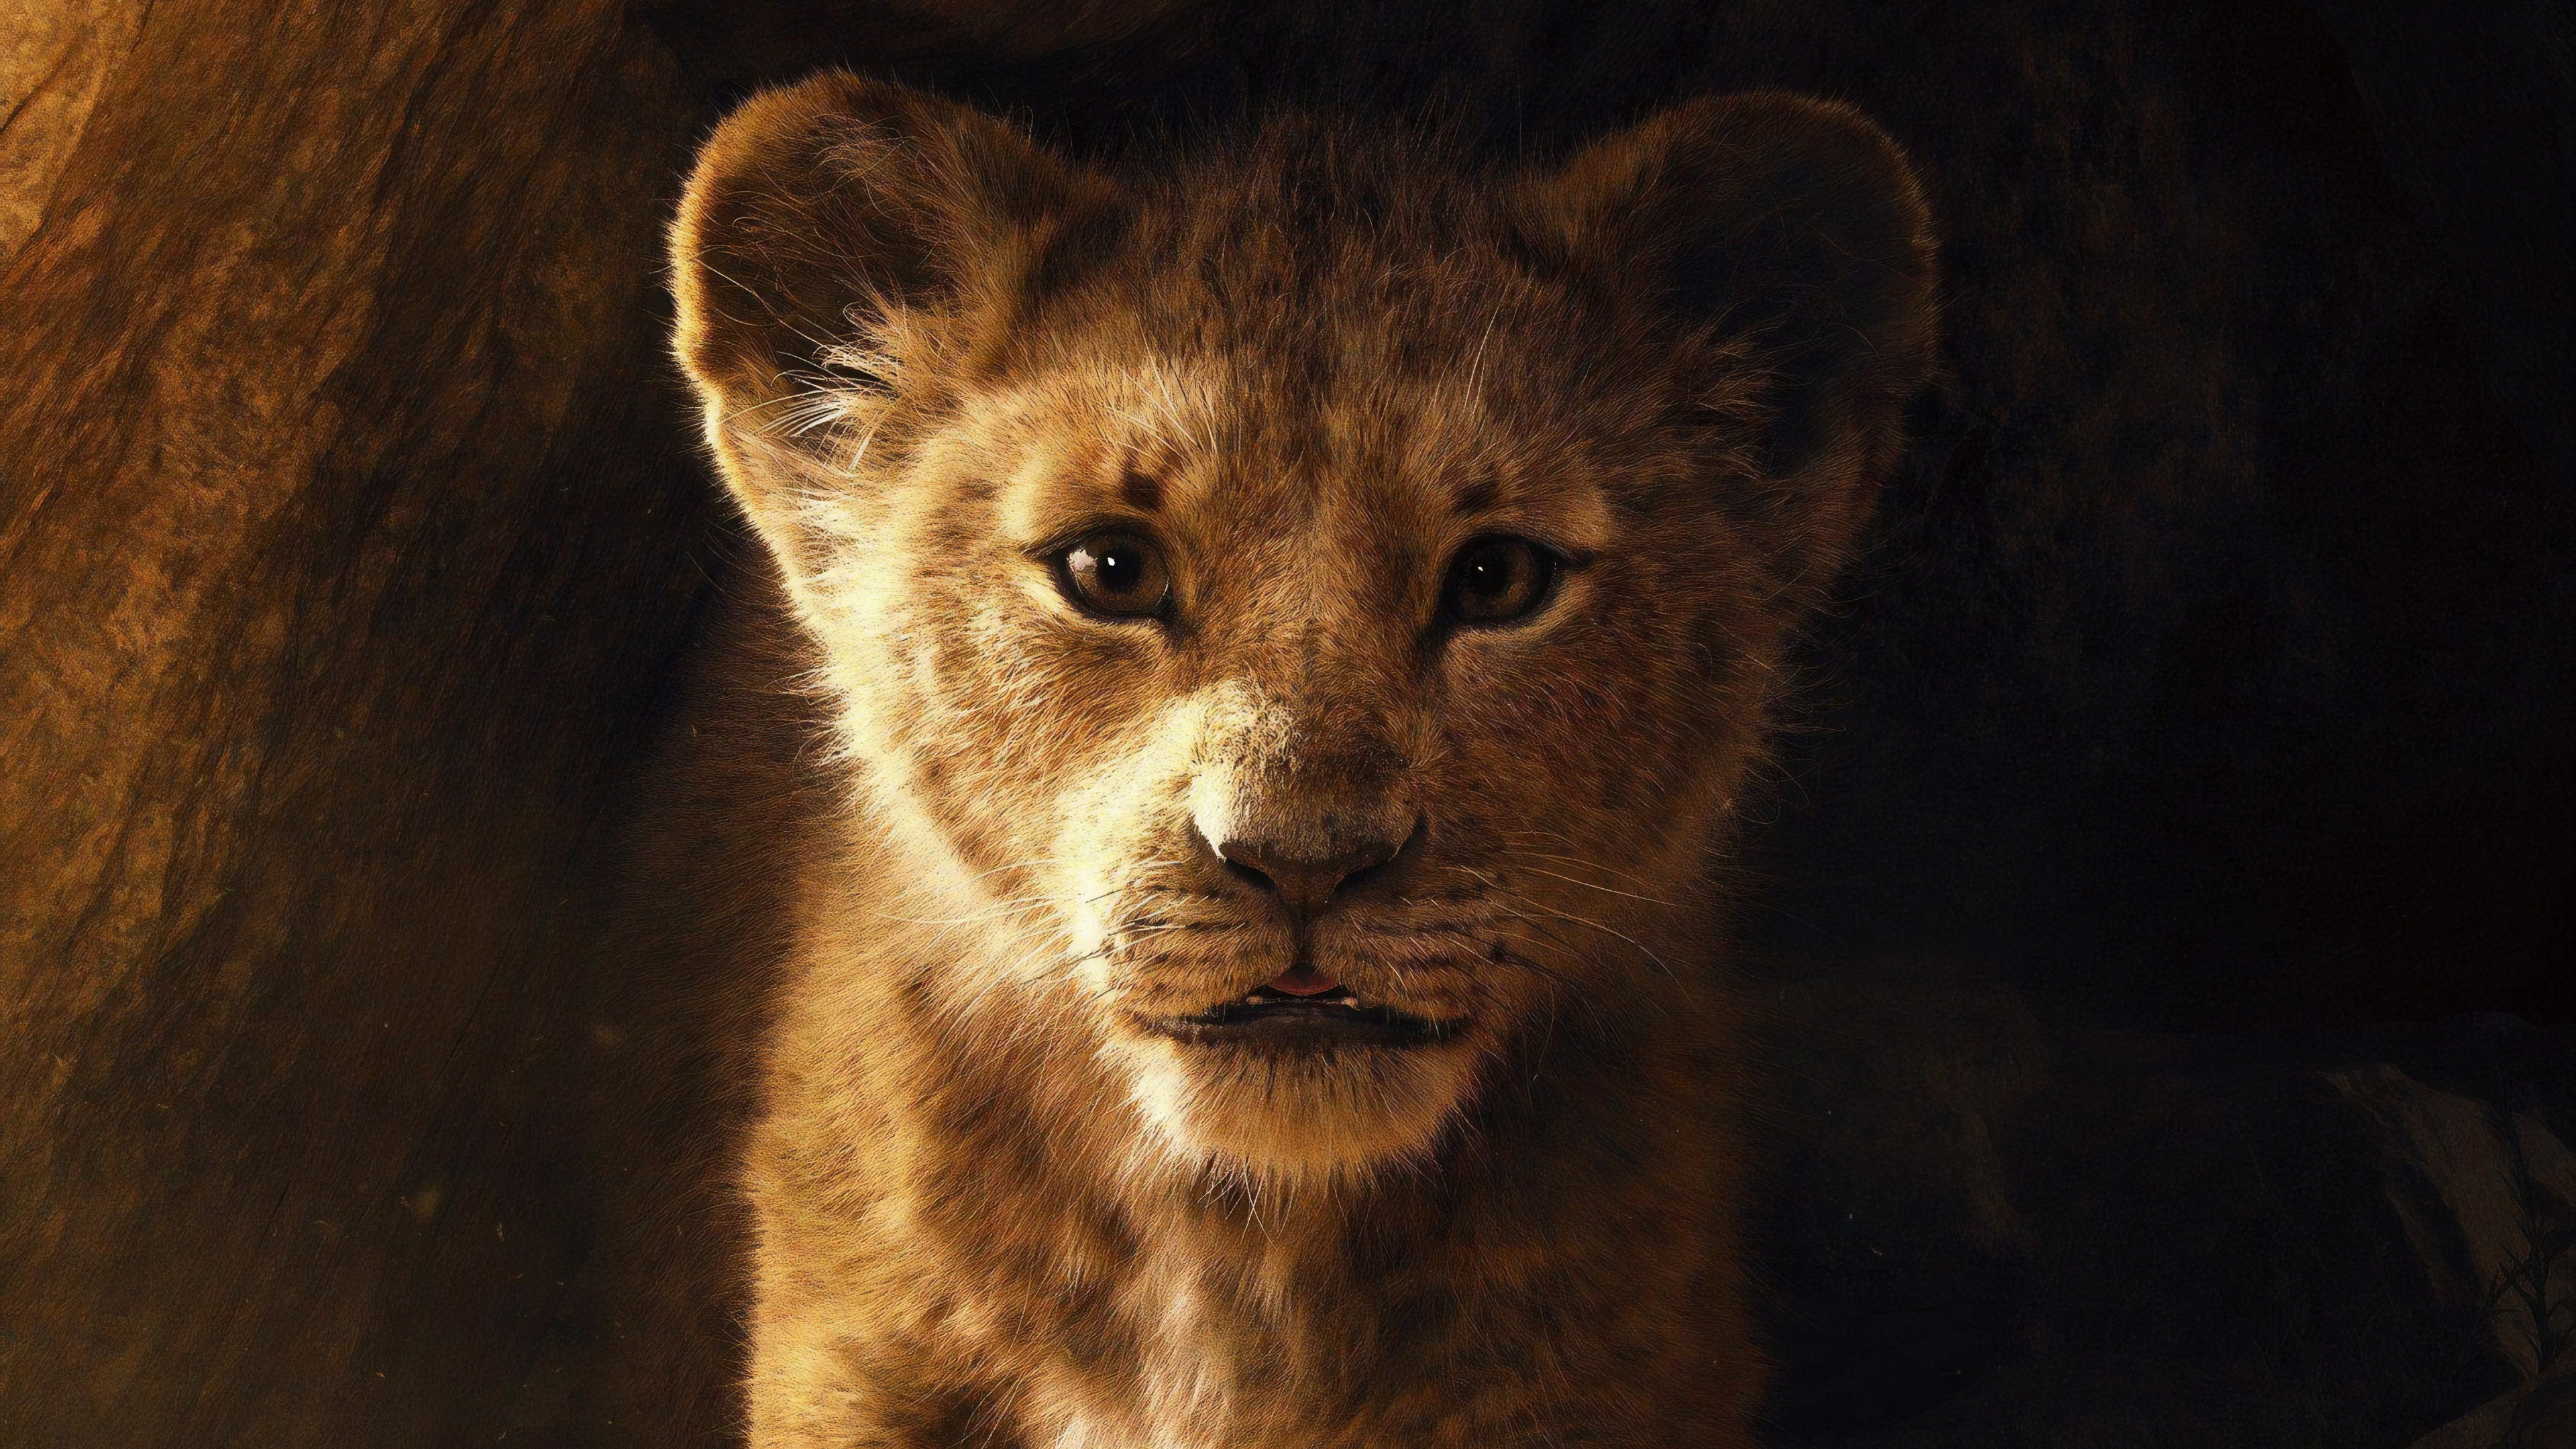 The Lion King 2019 Movie 4k Wallpaper 3840x2160